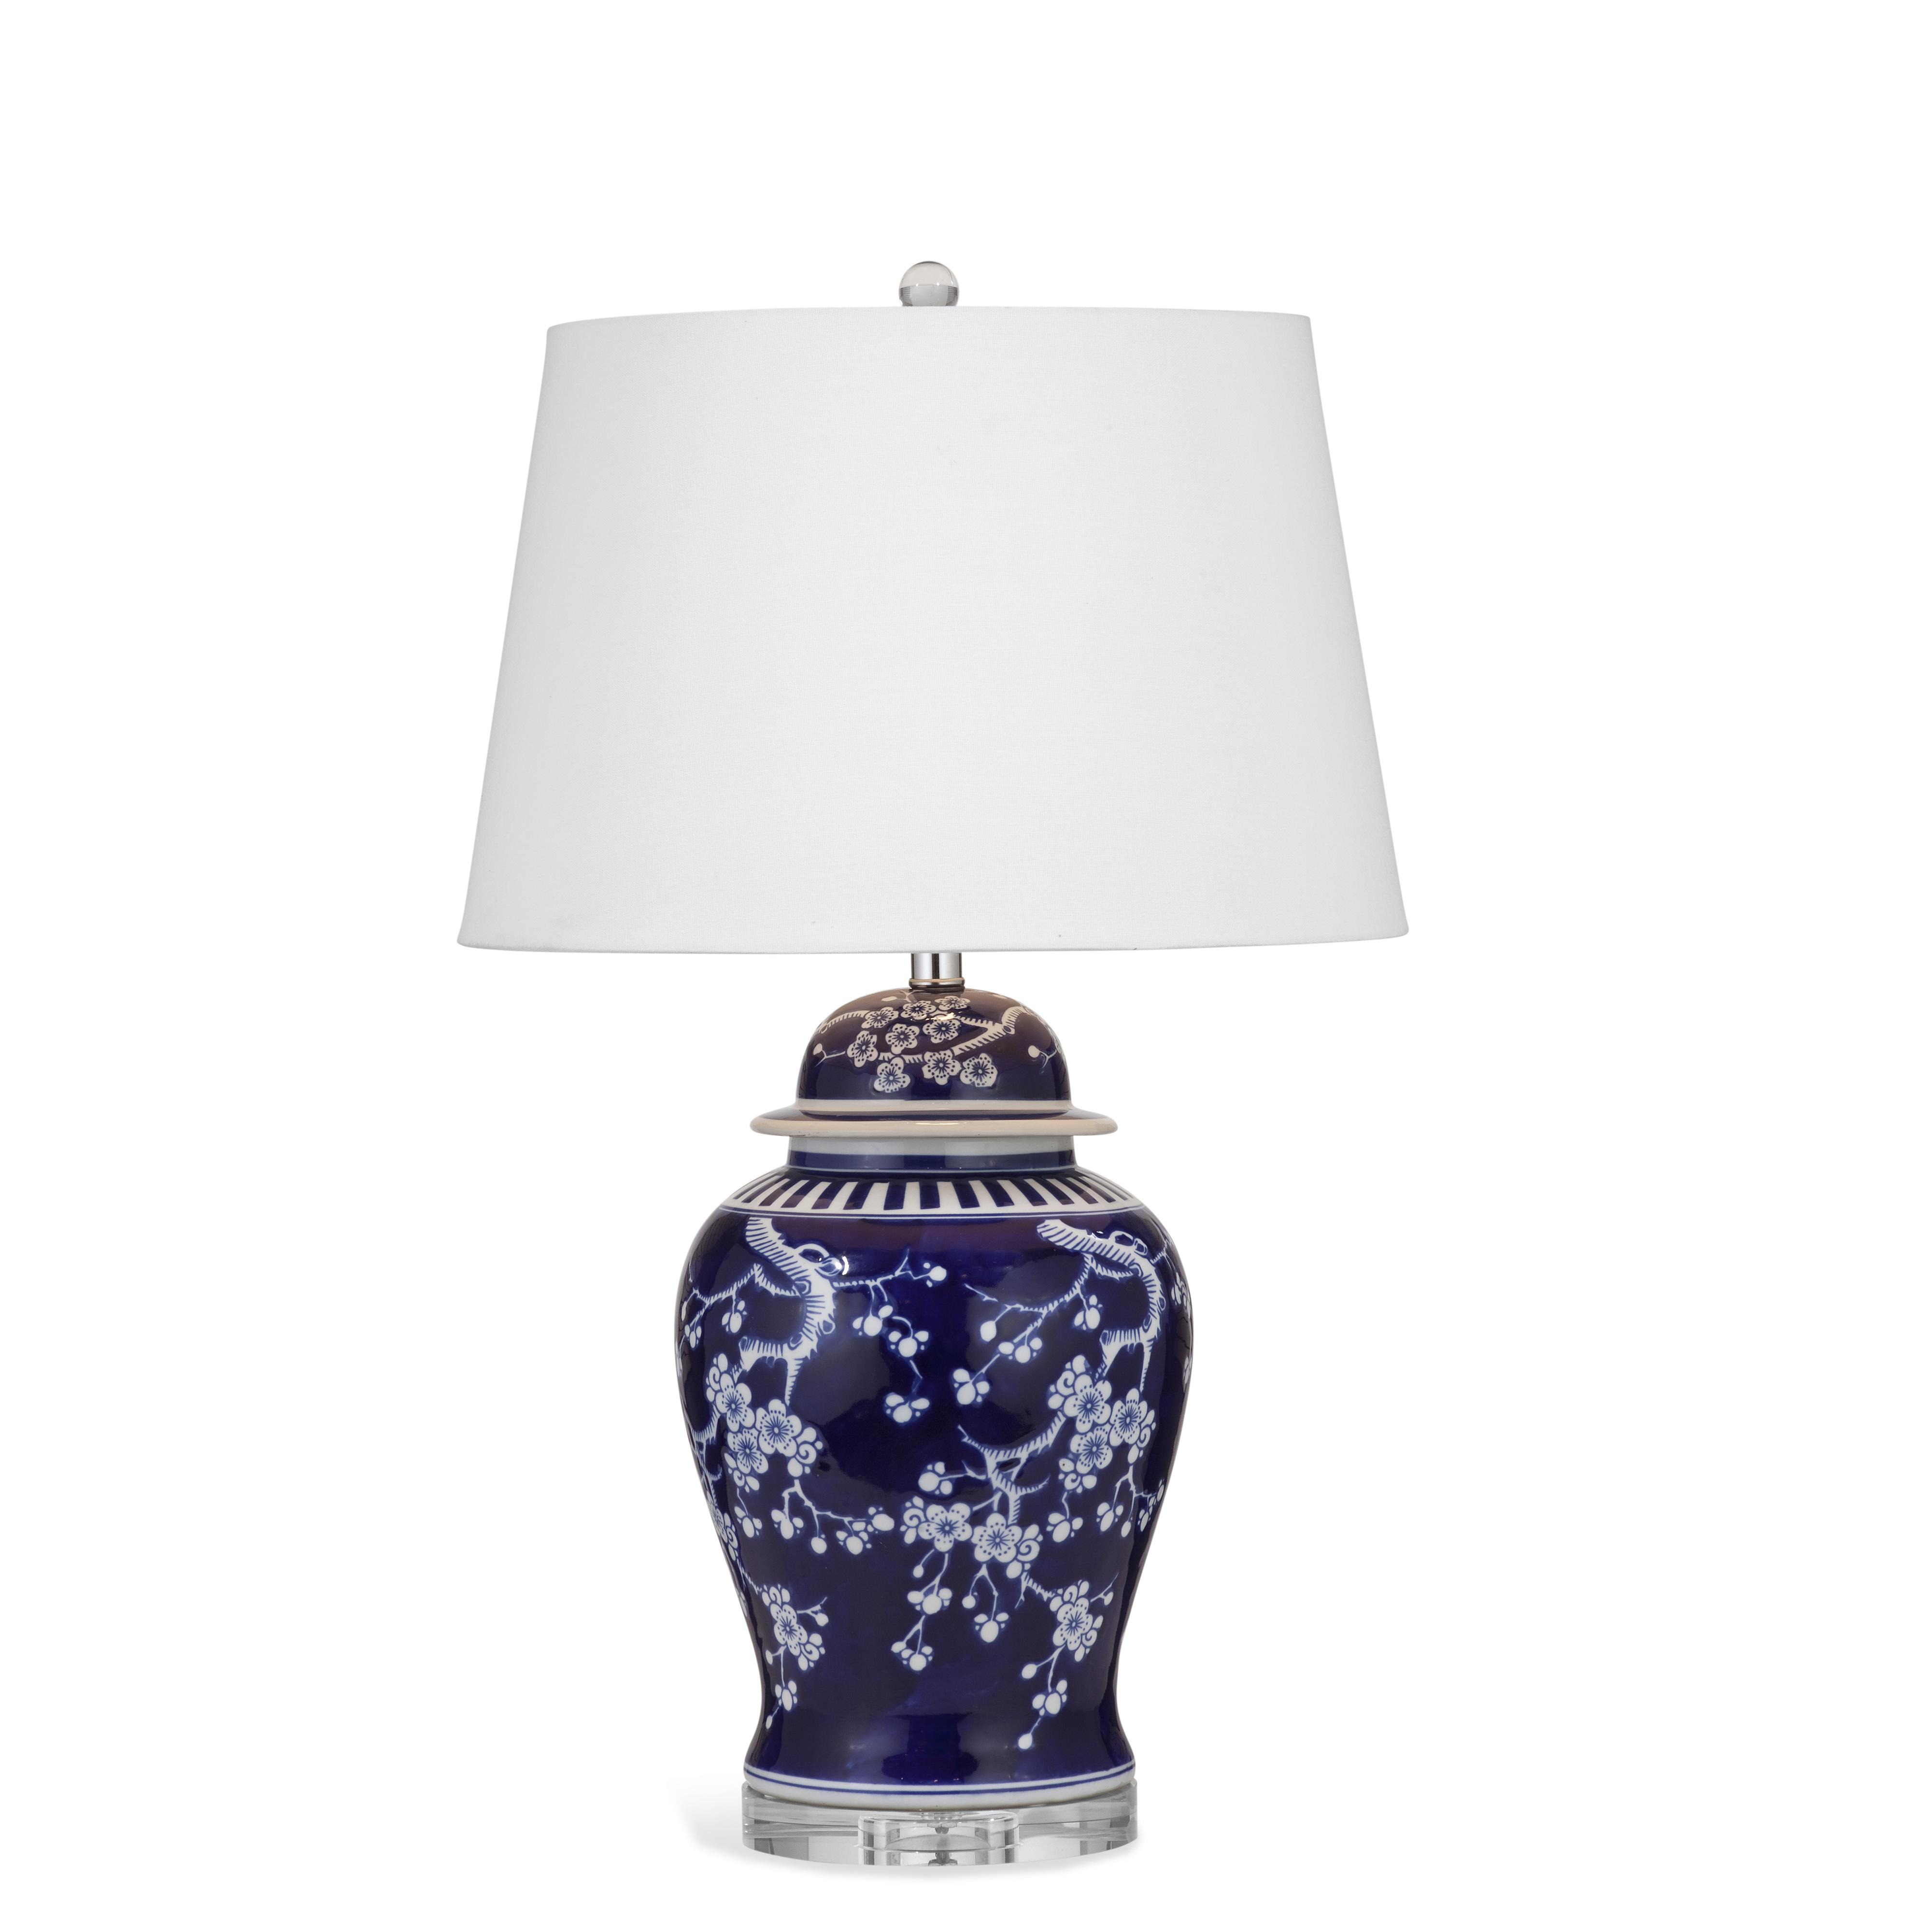 Old World Brohman Table Lamp by Bassett Mirror at Dream Home Interiors